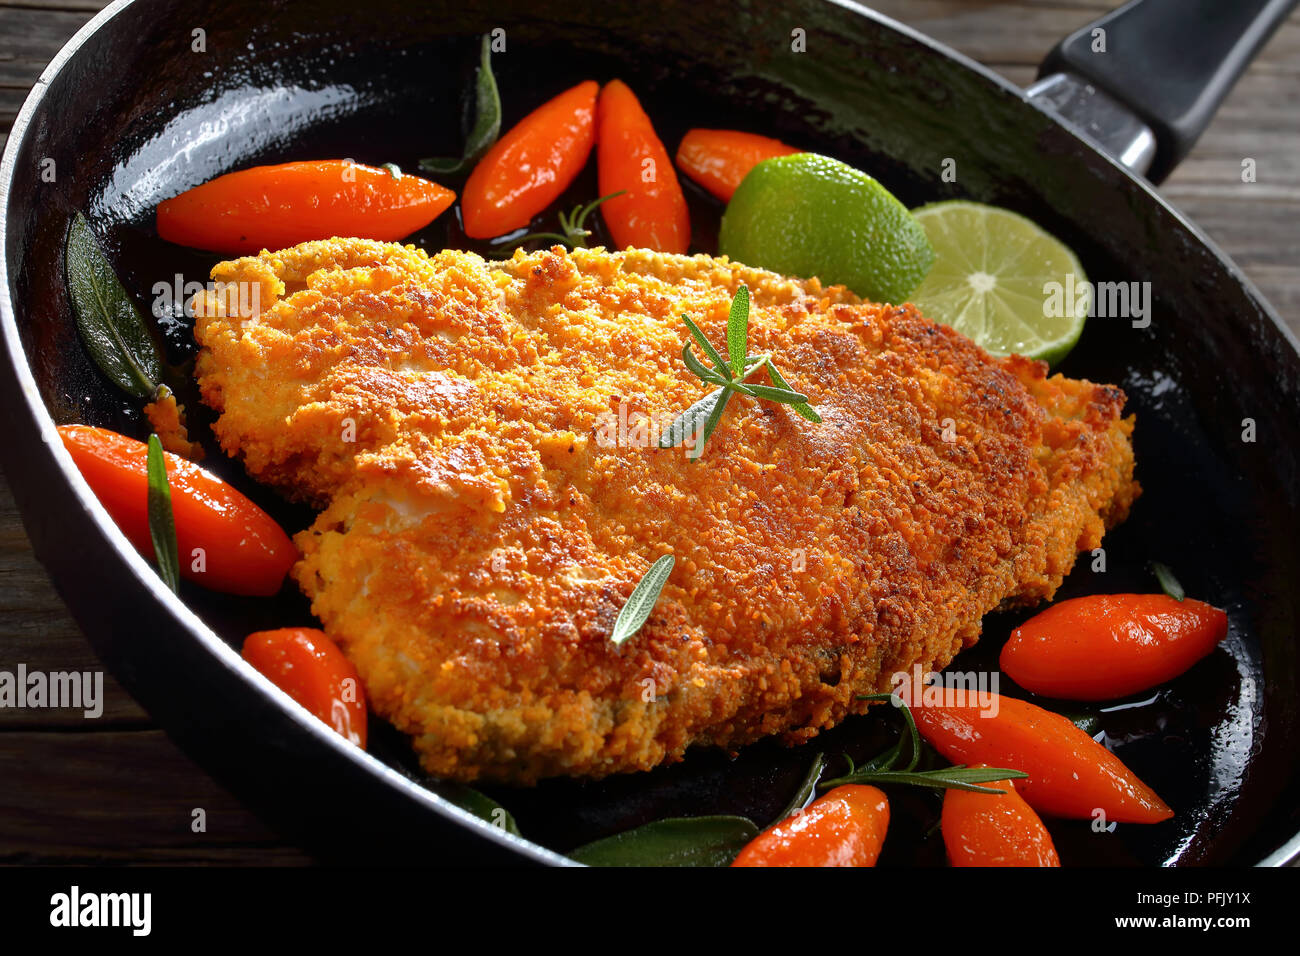 fried breaded white fish steak with glazed carrots, cut into tourne (oval shape), fresh lime slices, sage and rosemary in skillet on wooden table, vie - Stock Image